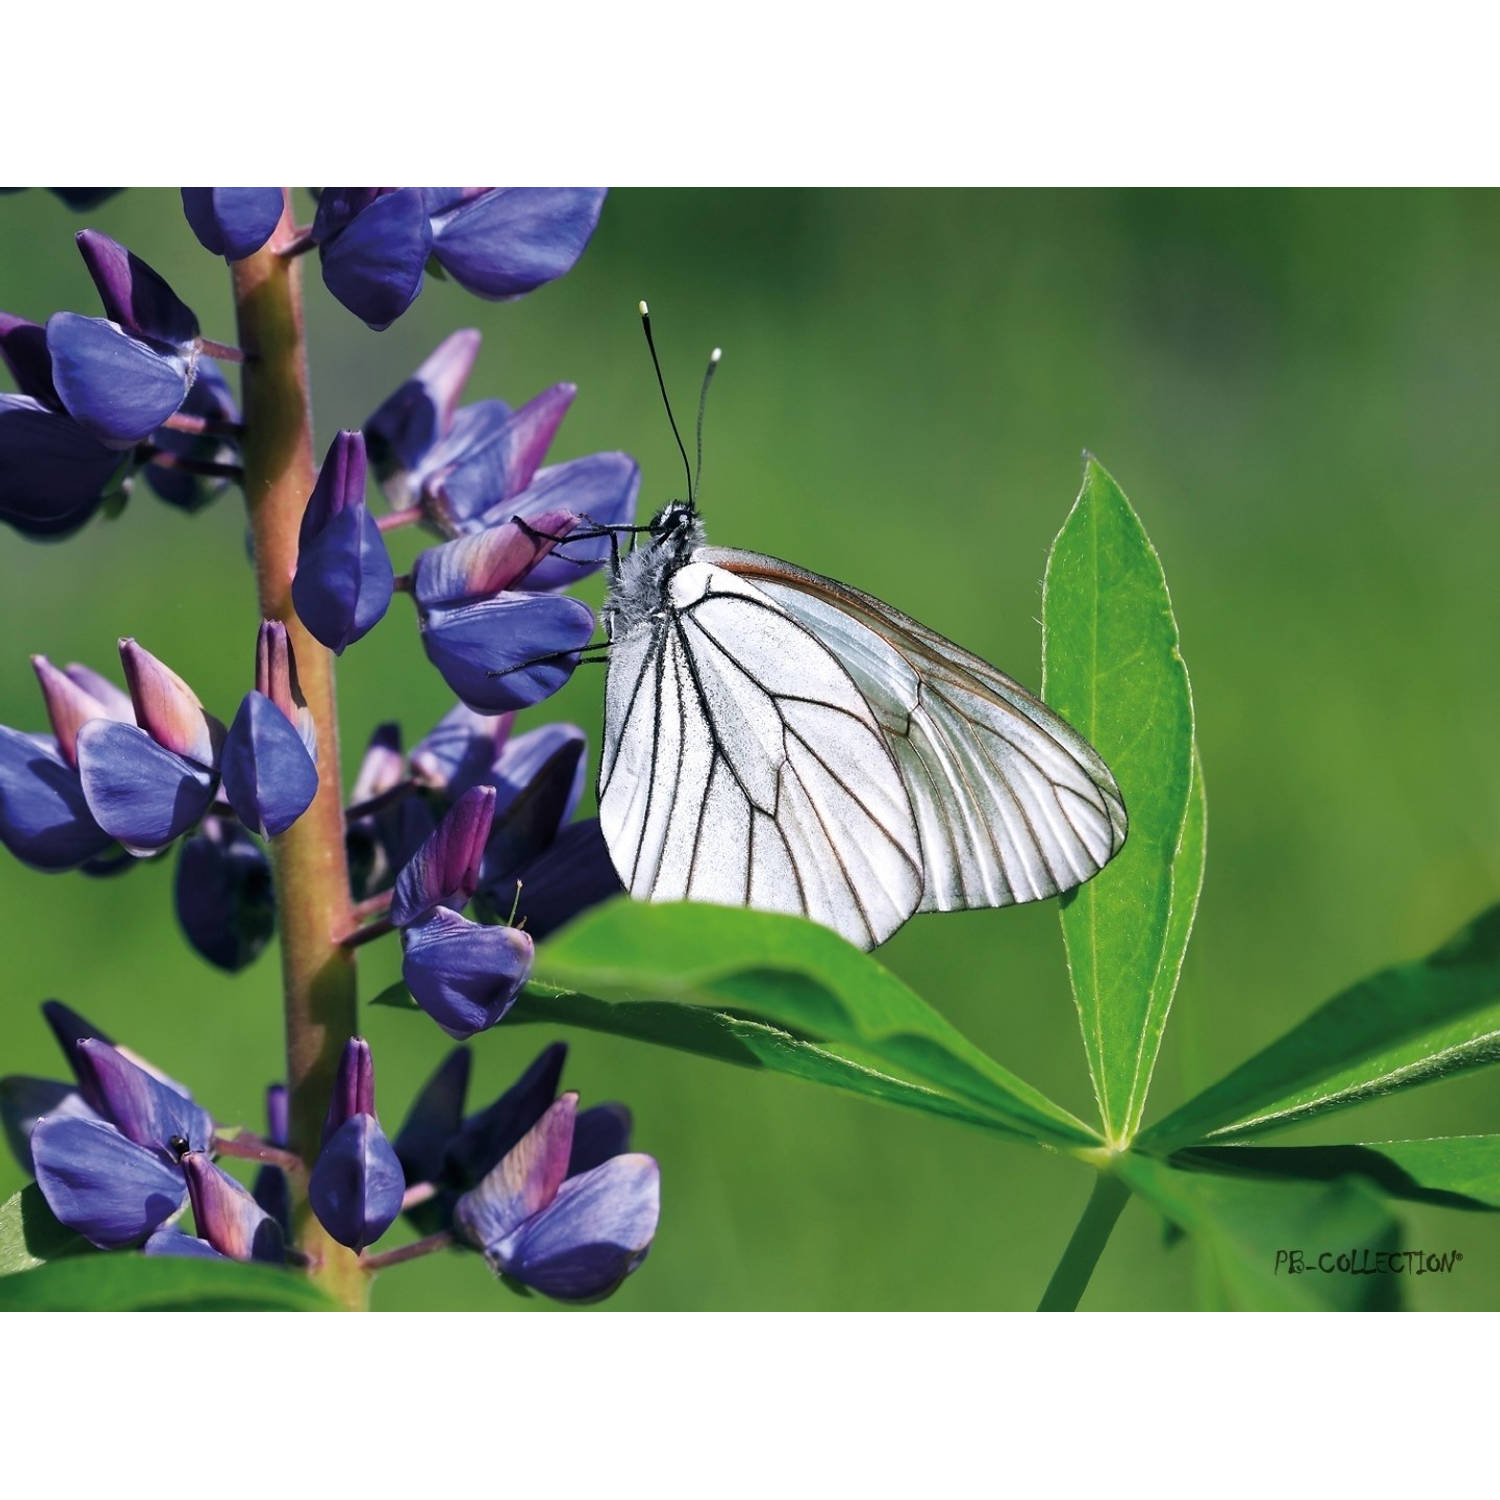 Tuinschilderij Lupin-Butterfly 70x130cm PB-Collection